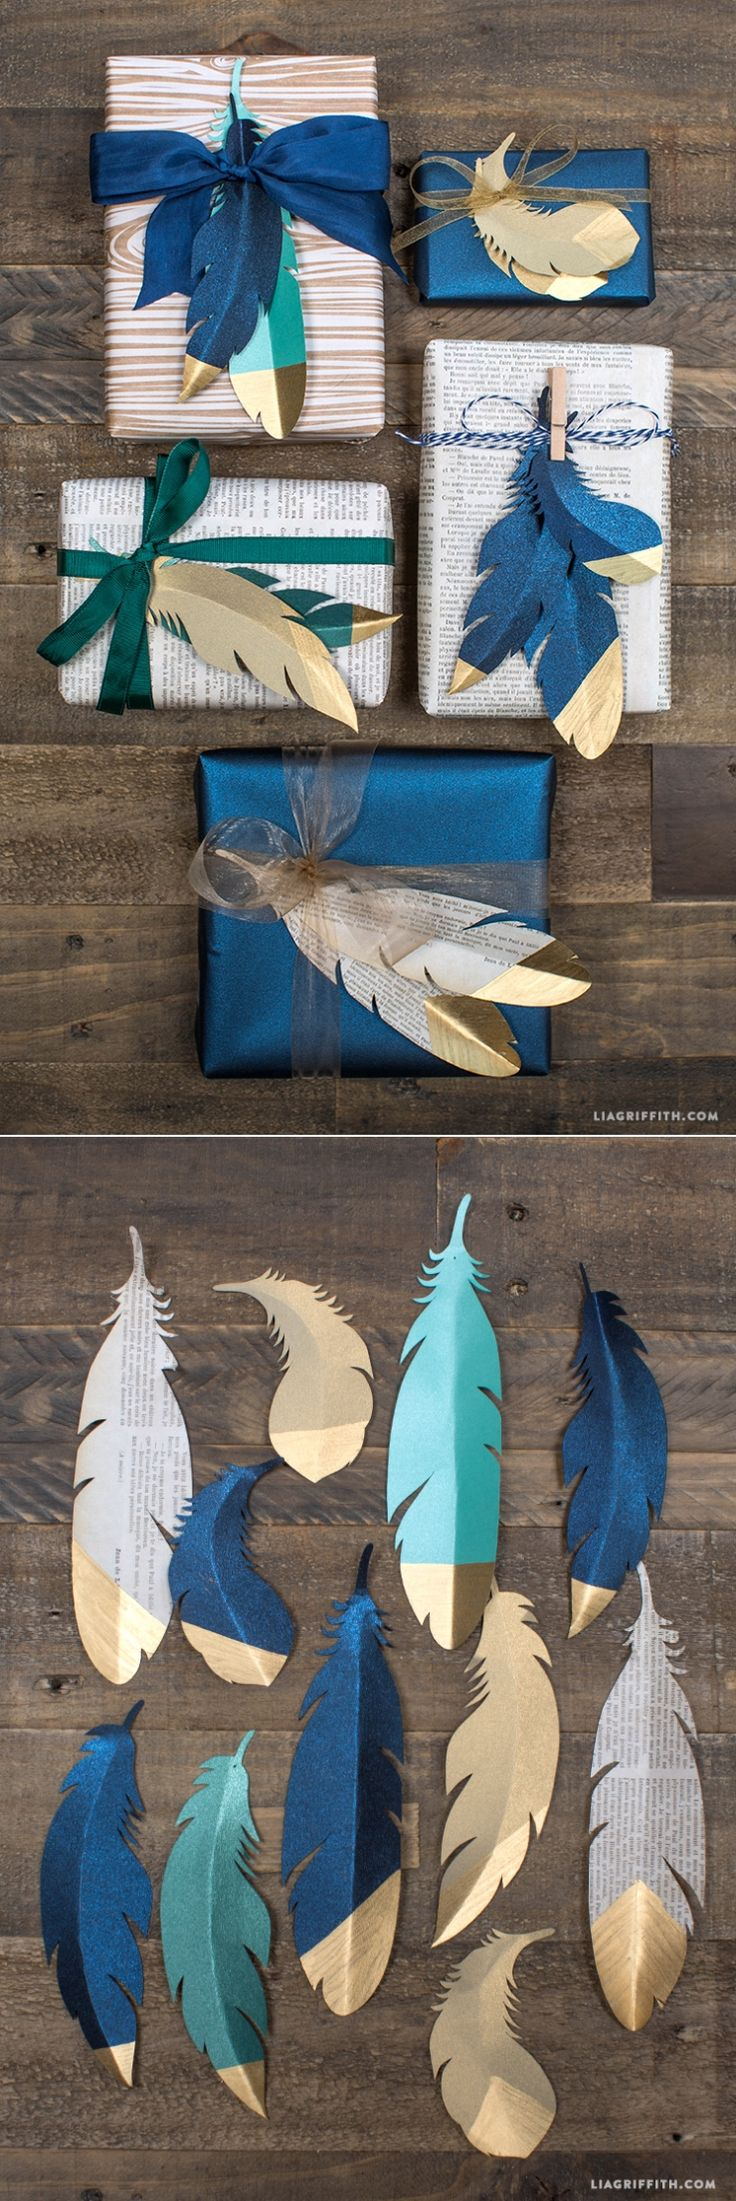 emballage-plumes-cadeaux.jpg